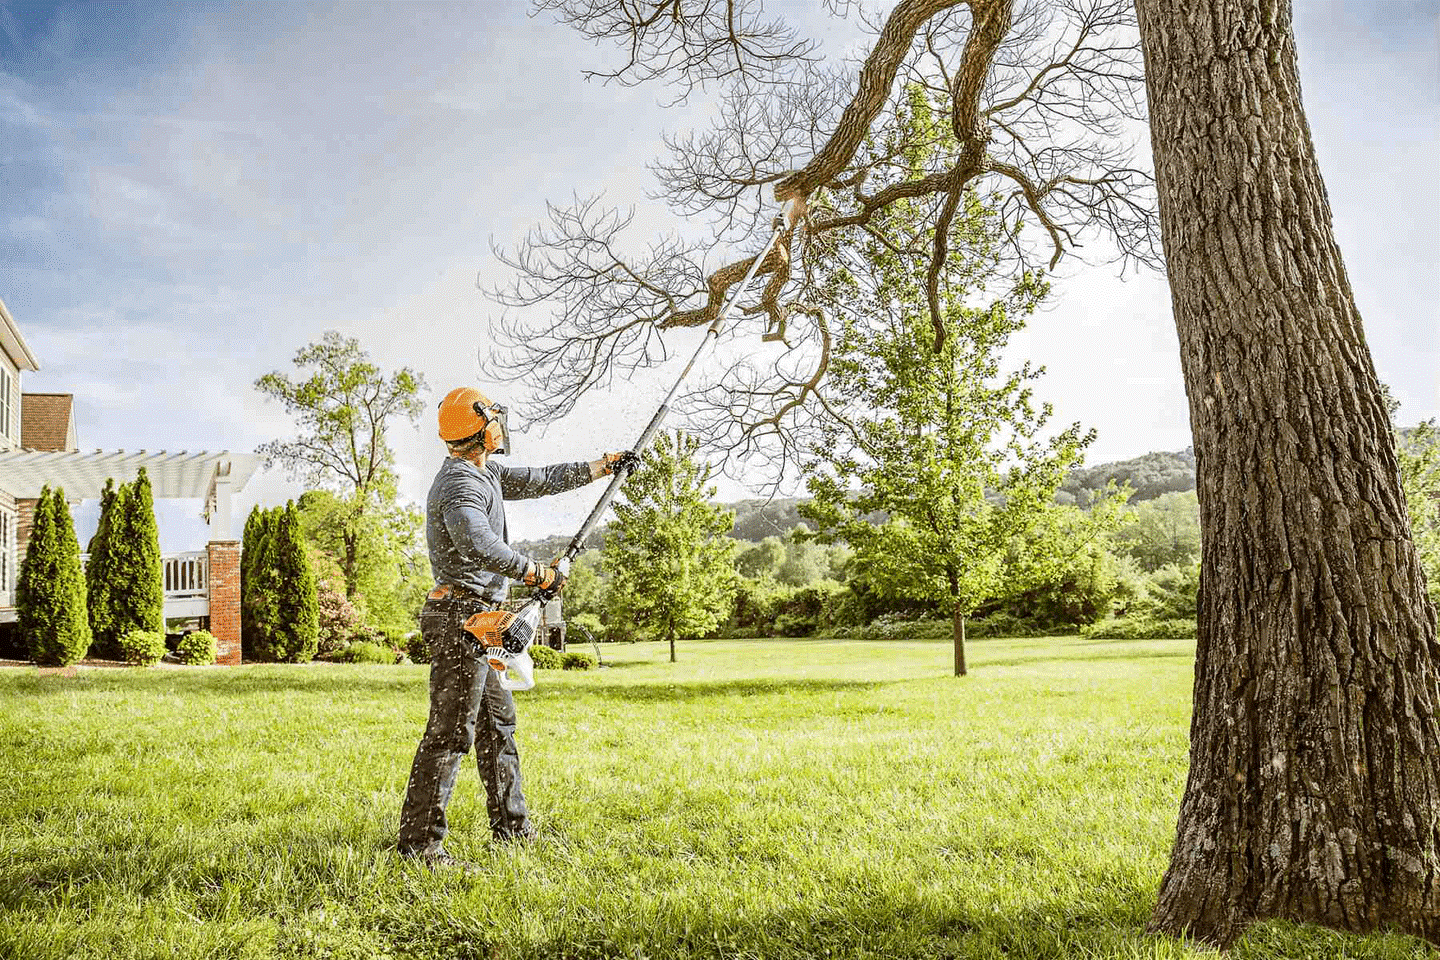 What is tree trimming called